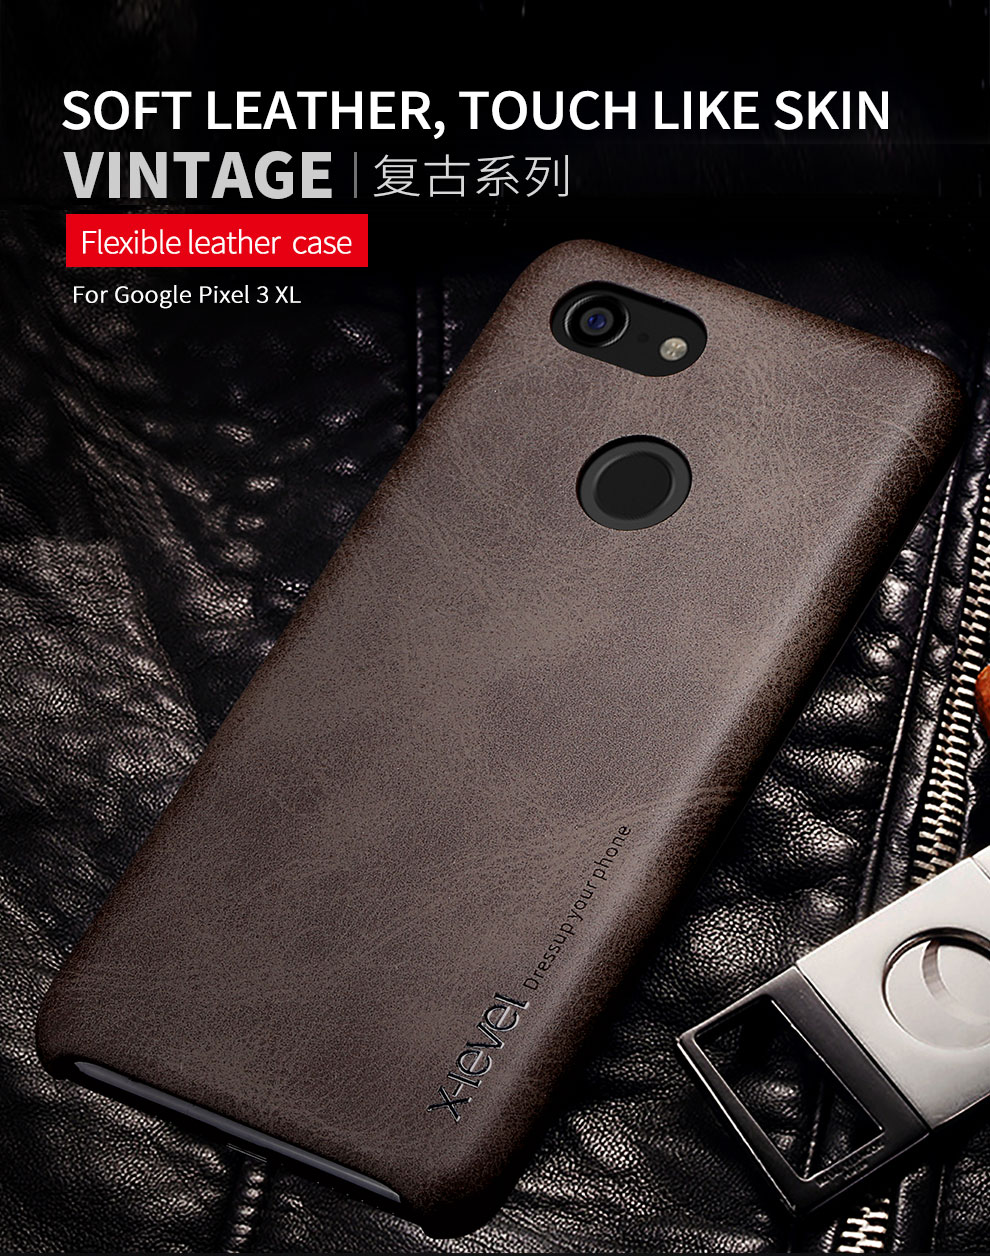 newest de8f2 407fc X-Level Brand New PU Leather Case For Google Pixel 2 2 XL Back Case Cover  for Google Pixel 3 3 XL Vingate Leather Case Capa